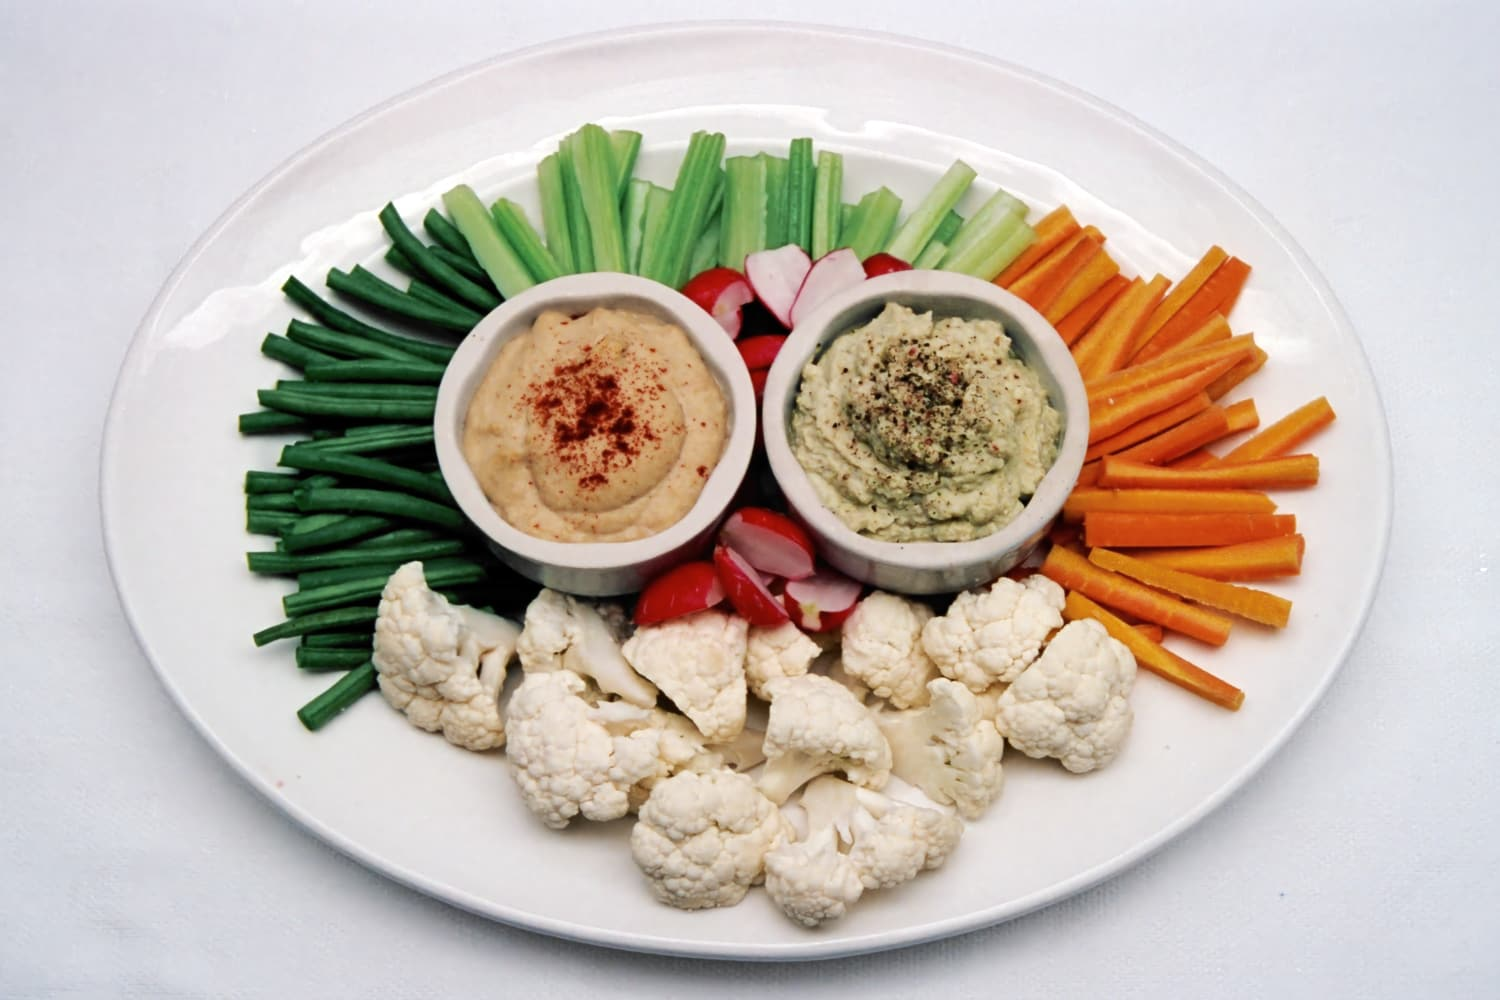 Vegetable Batons with Dips